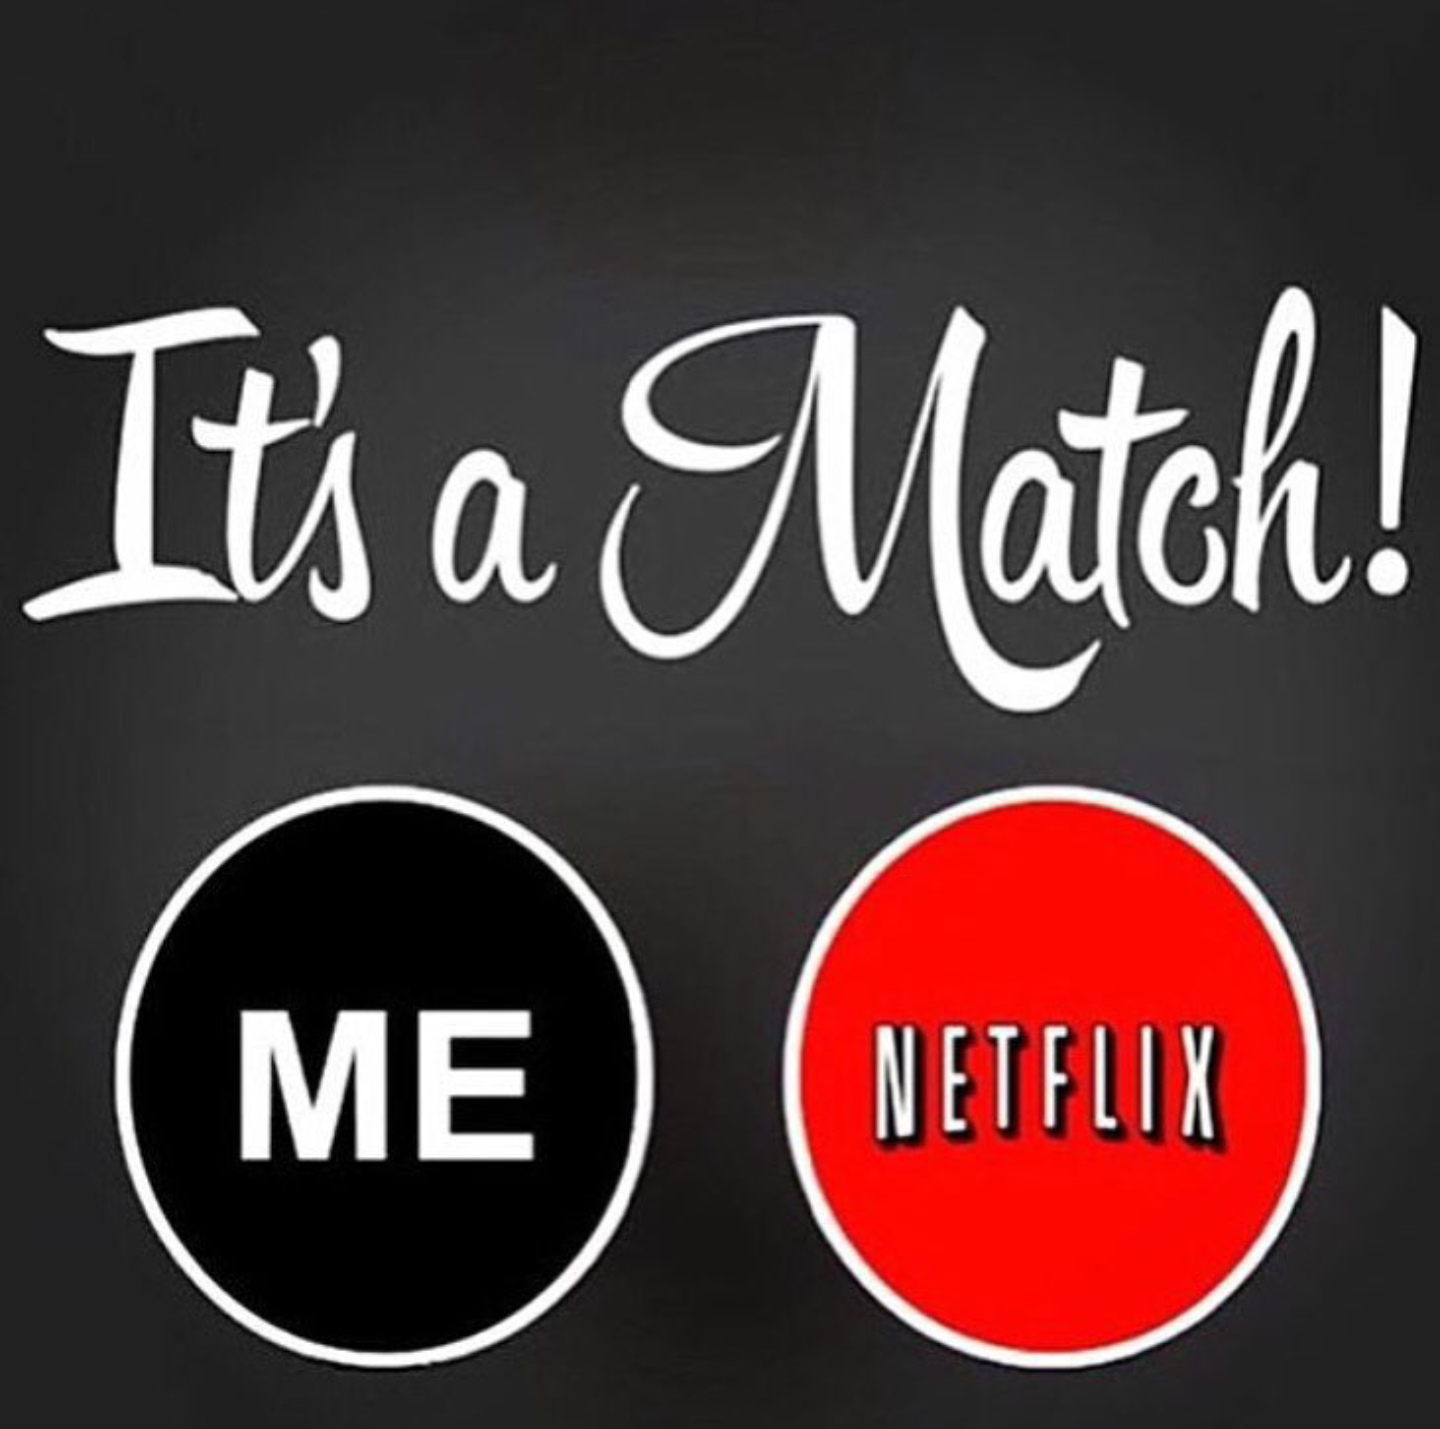 Teenage orgasm netflix dating meme public